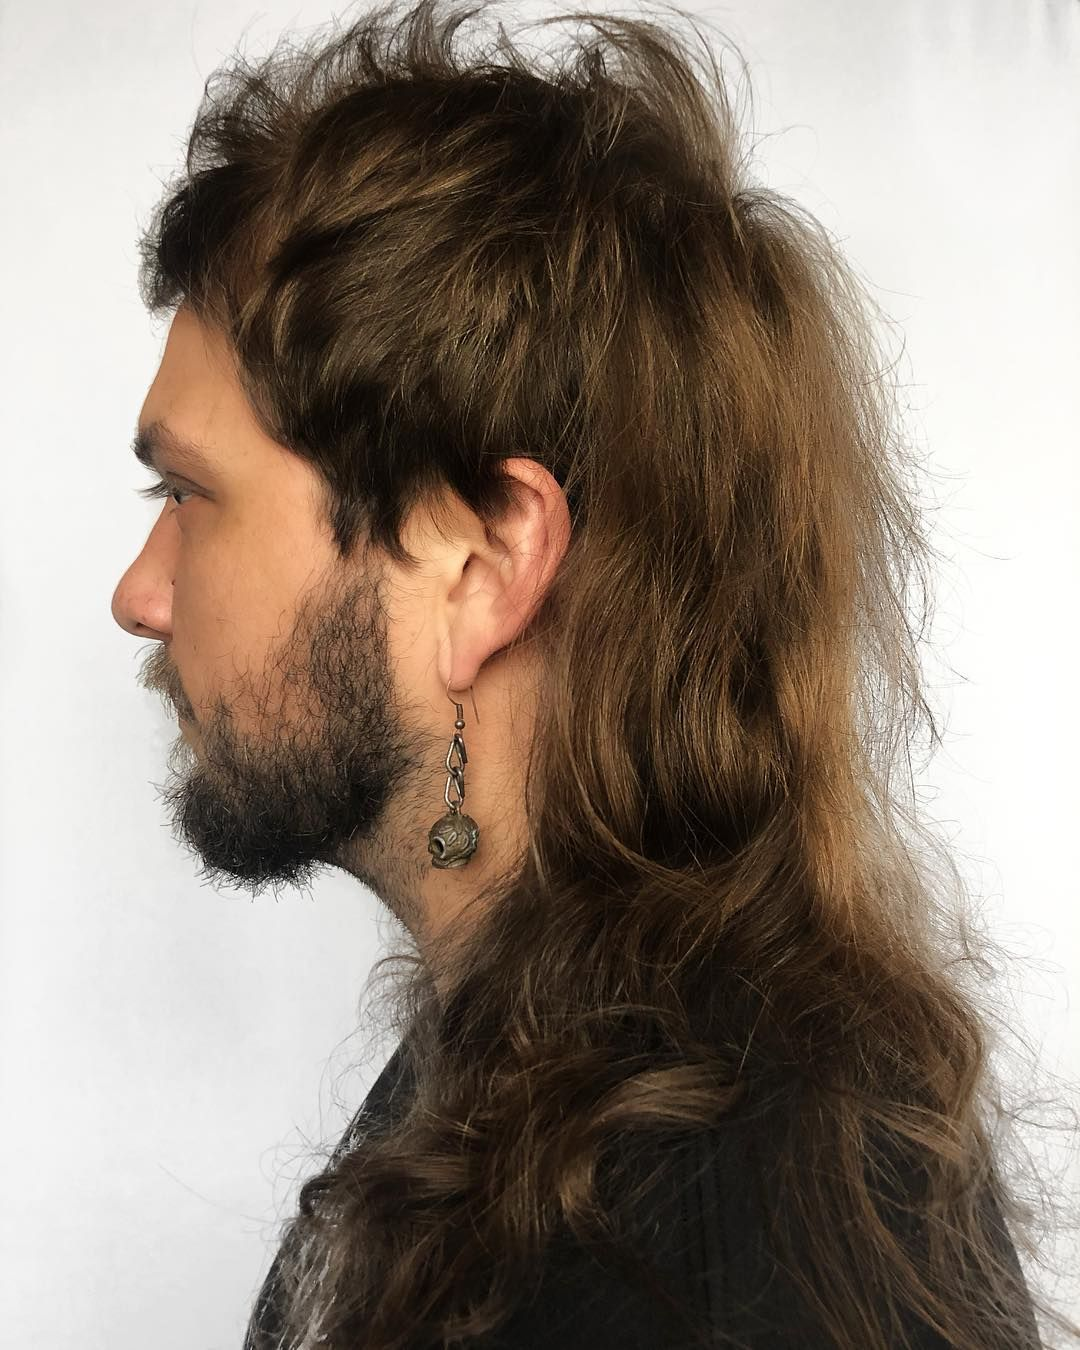 15 Mullet Hairstyles For Men 2019 Haircut Mullet Mullethaircut Mullethairstylemens Mullet Hairstyle Mullet Haircut Modern Mullet